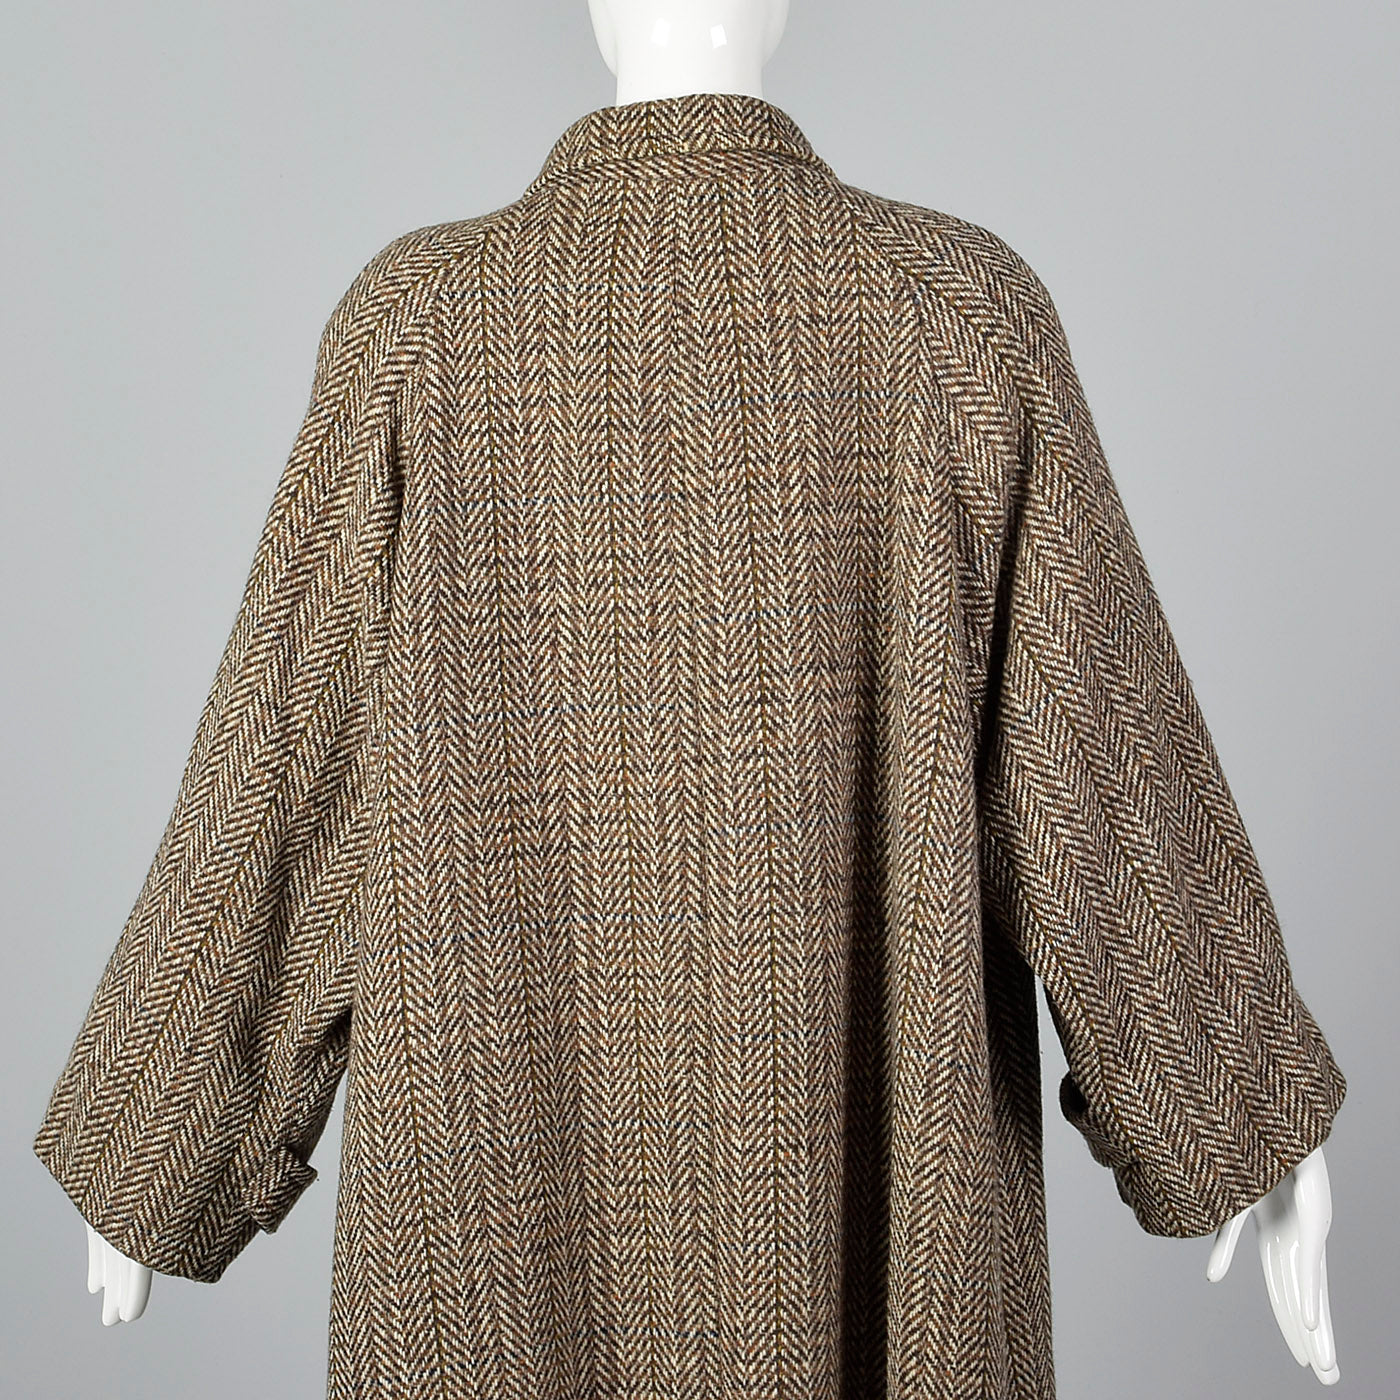 1980s Oversized Tweed Overcoat